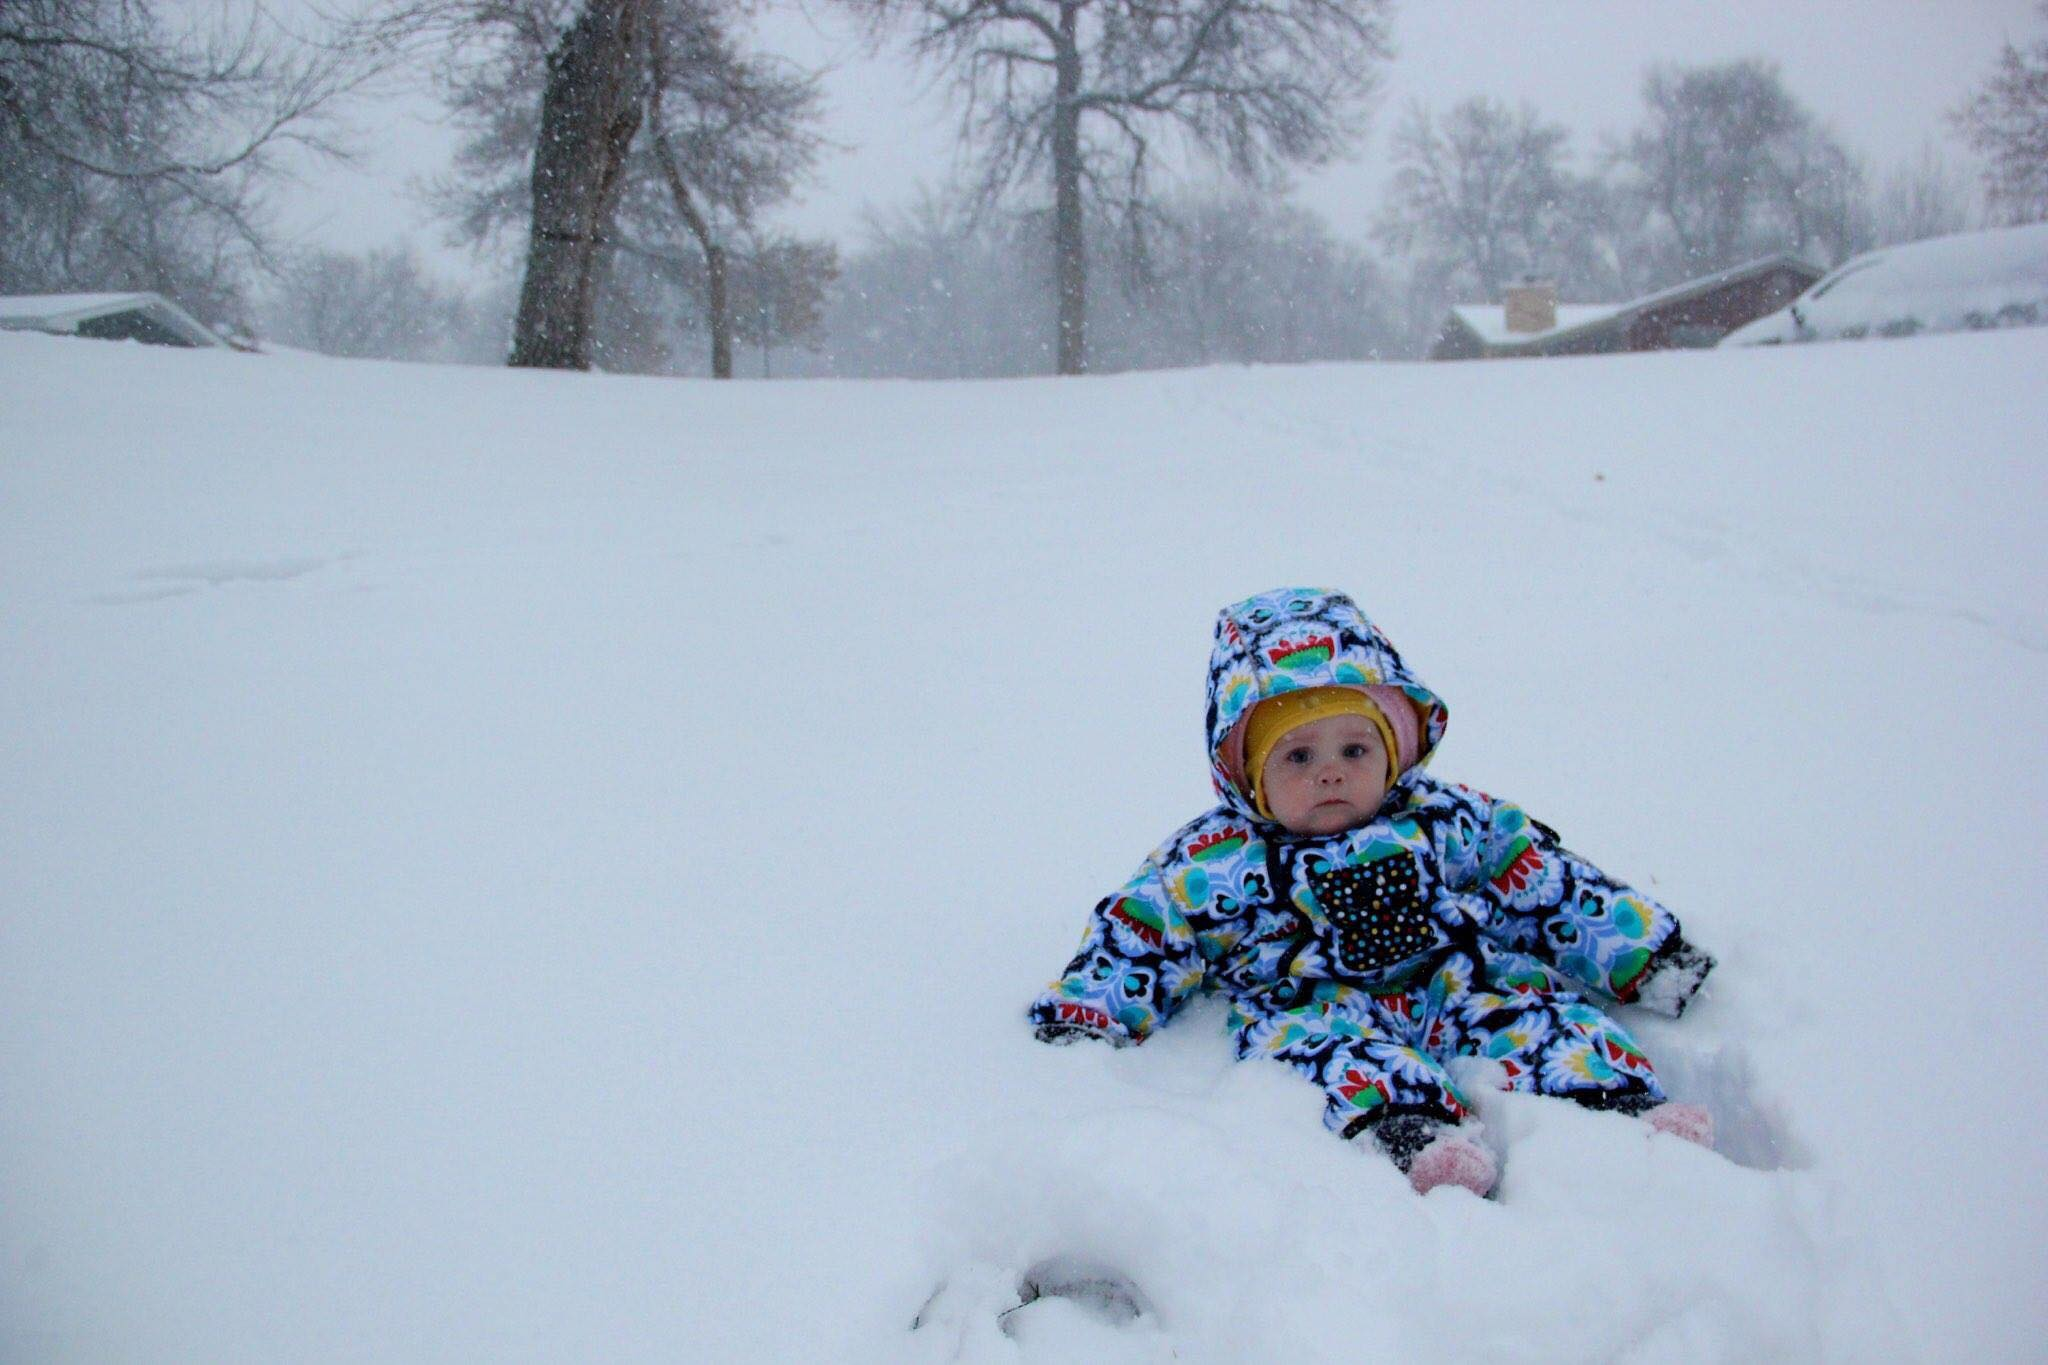 Why Do We Live Here Again? The Agony of Never-Ending Winter in the Midwest www.herviewfromhome.com